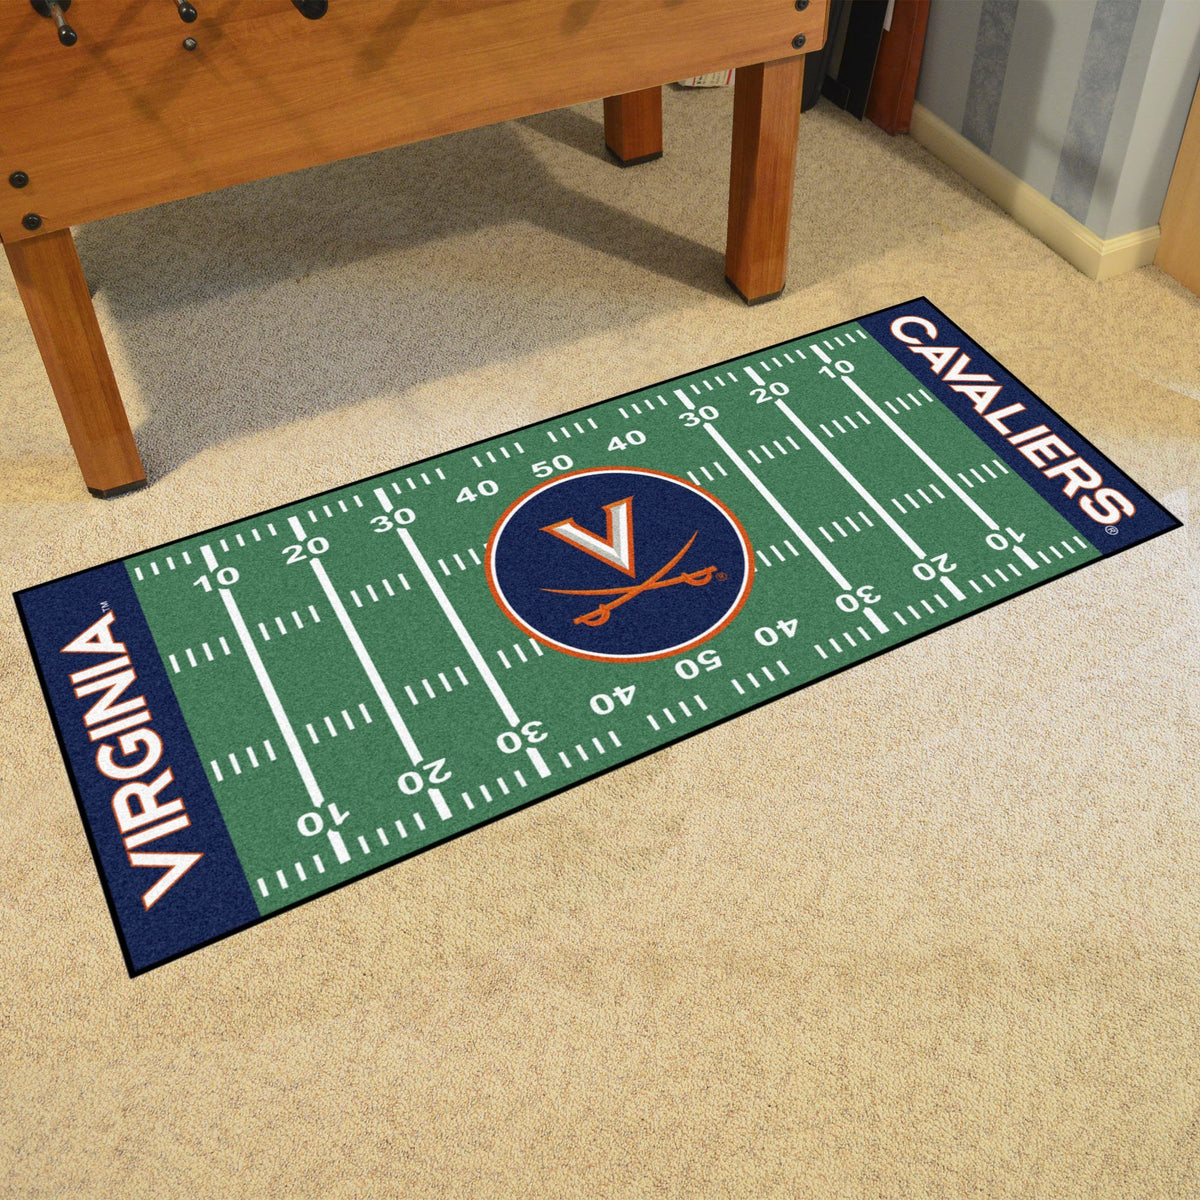 Collegiate - Football Field Runner Collegiate Mats, Rectangular Mats, Football Field Runner, Collegiate, Home Fan Mats Virginia